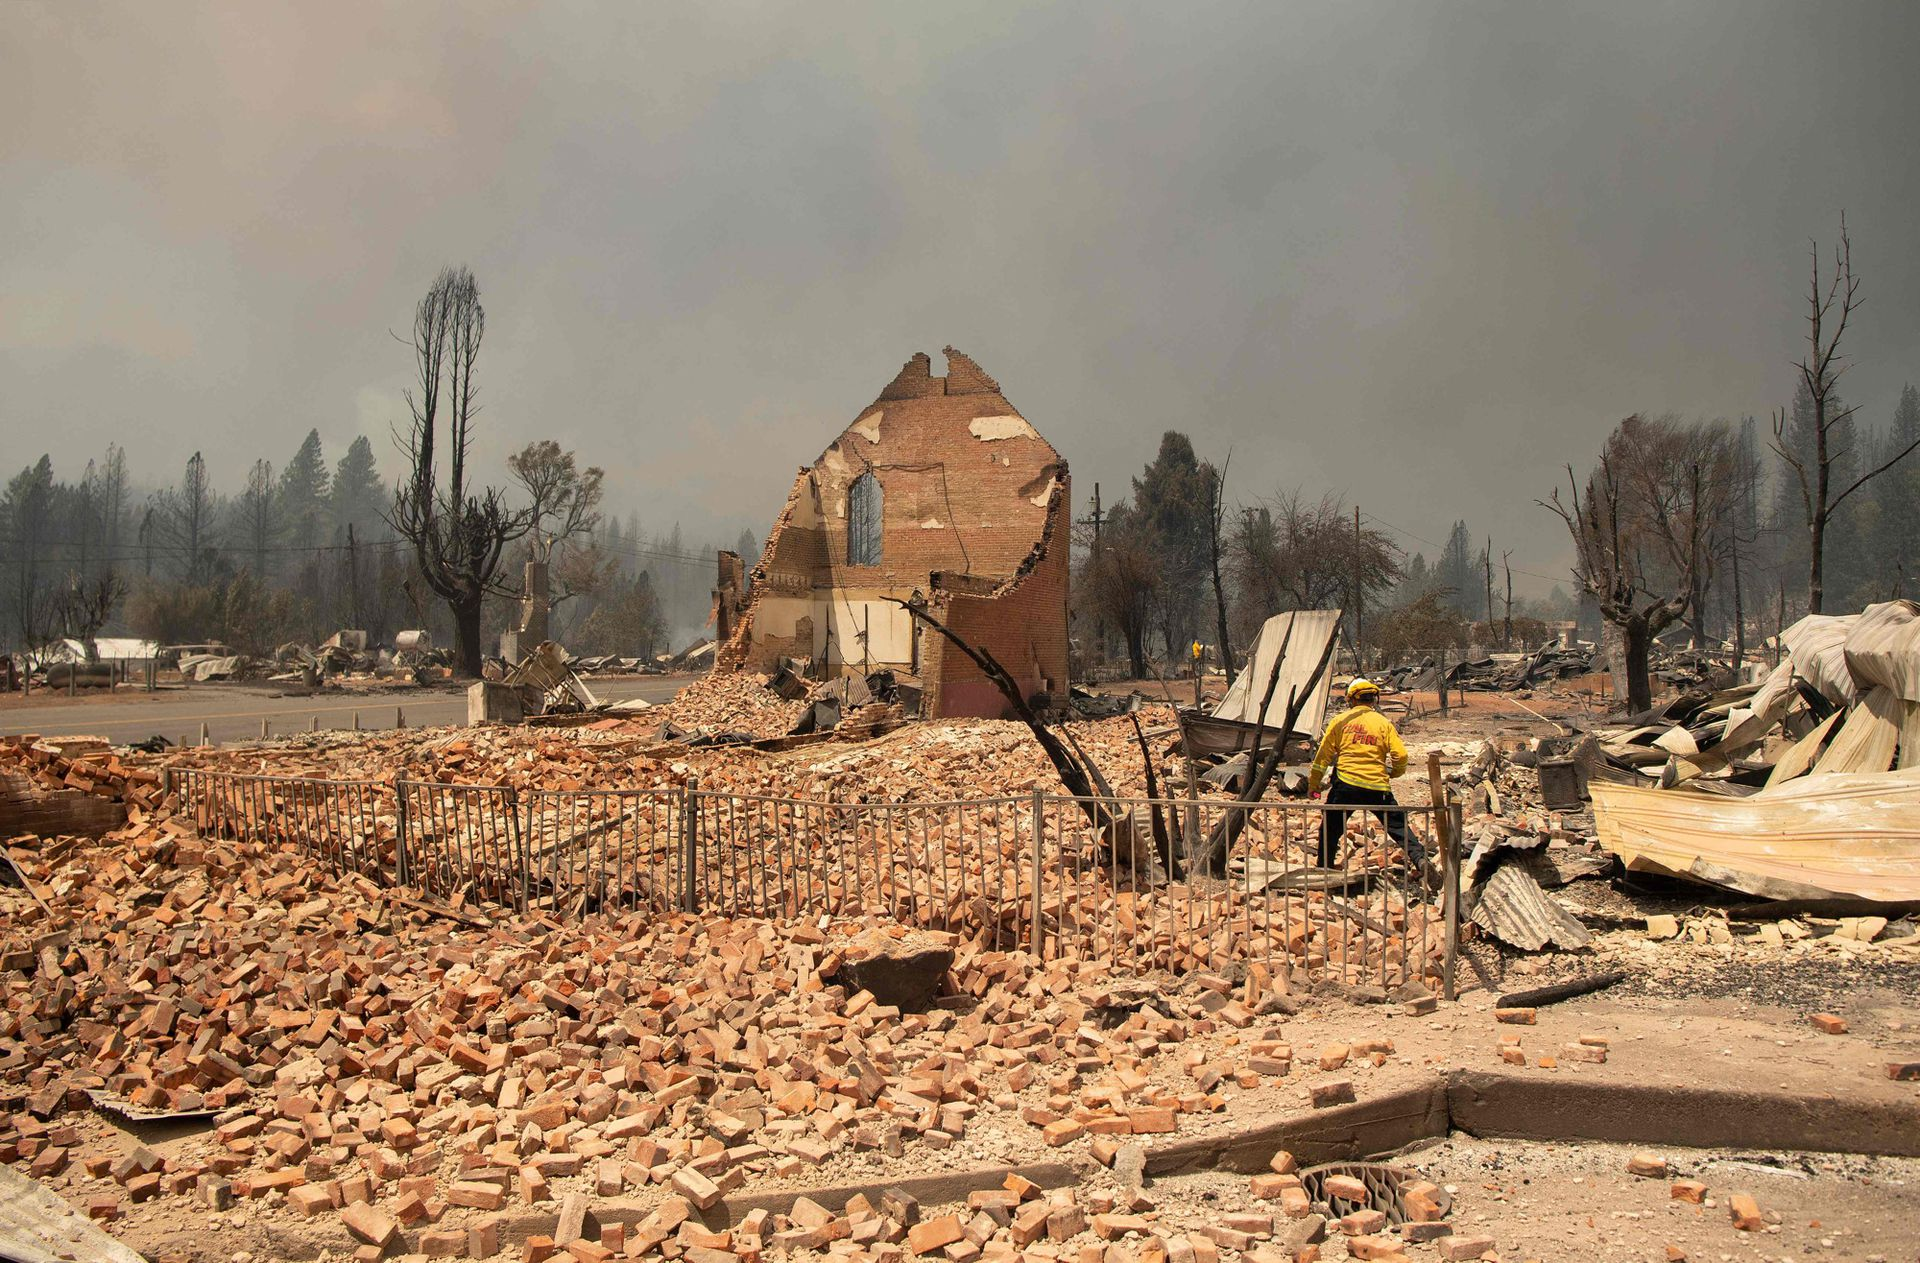 A firefighter inspects a historic building that burned during the Dixie Fire in downtown Greenville, California.  Greenville, is an Indian Valley settlement of a few hundred people dating back to the Gold Rush in the mid-19th century.  It was engulfed in flames as the wind directed hell towards the community, turning the sky orange